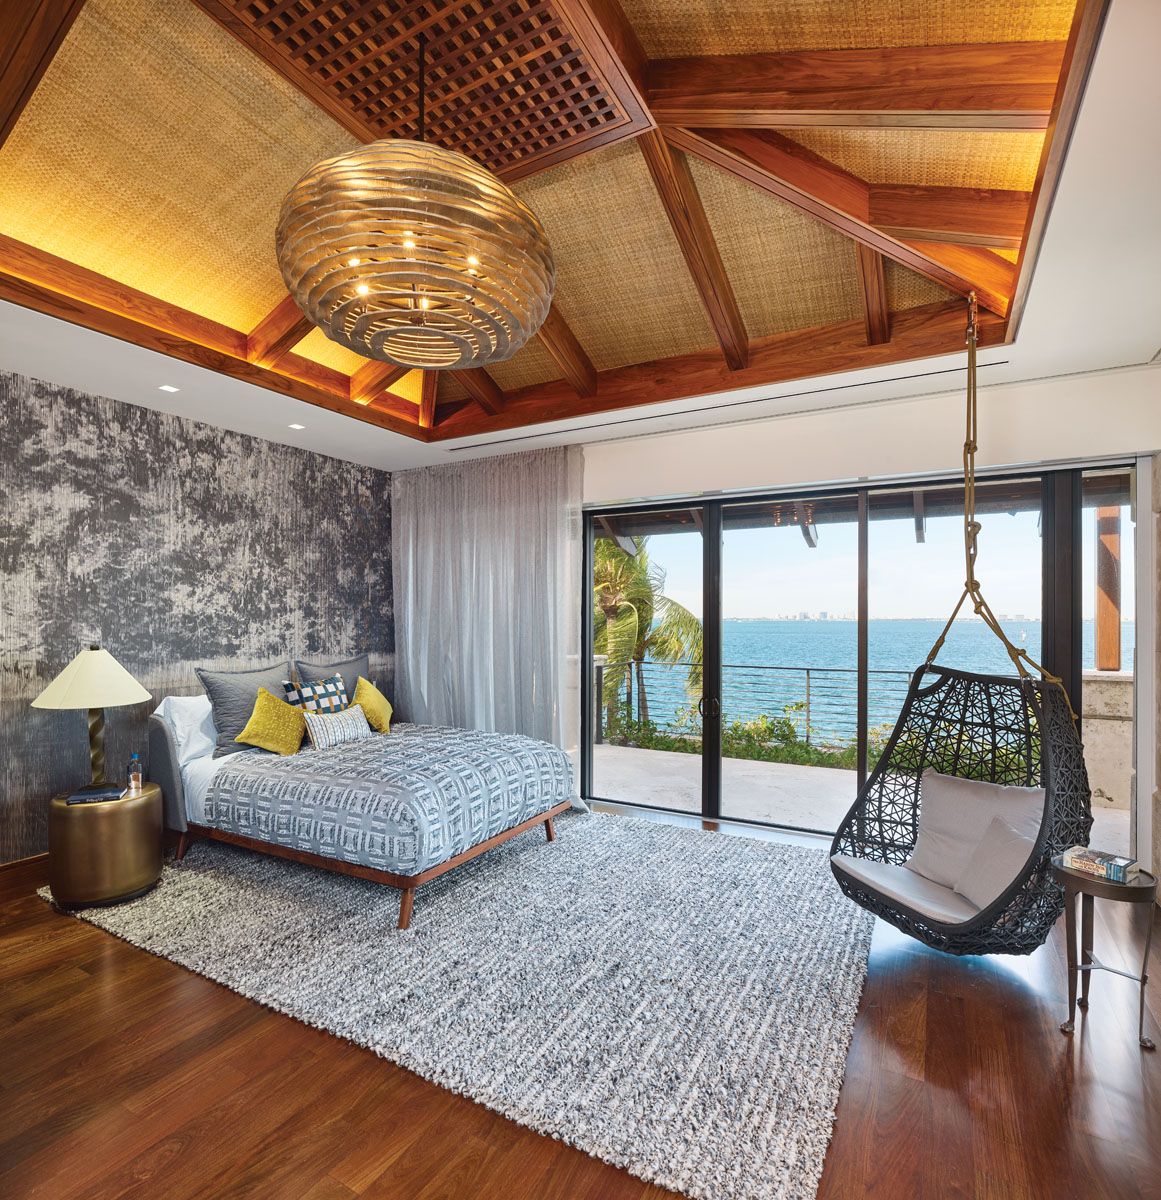 The couple's son has a peaceful retreat full of neutral hues, along with a sturdy swing and an expansive view of the water.